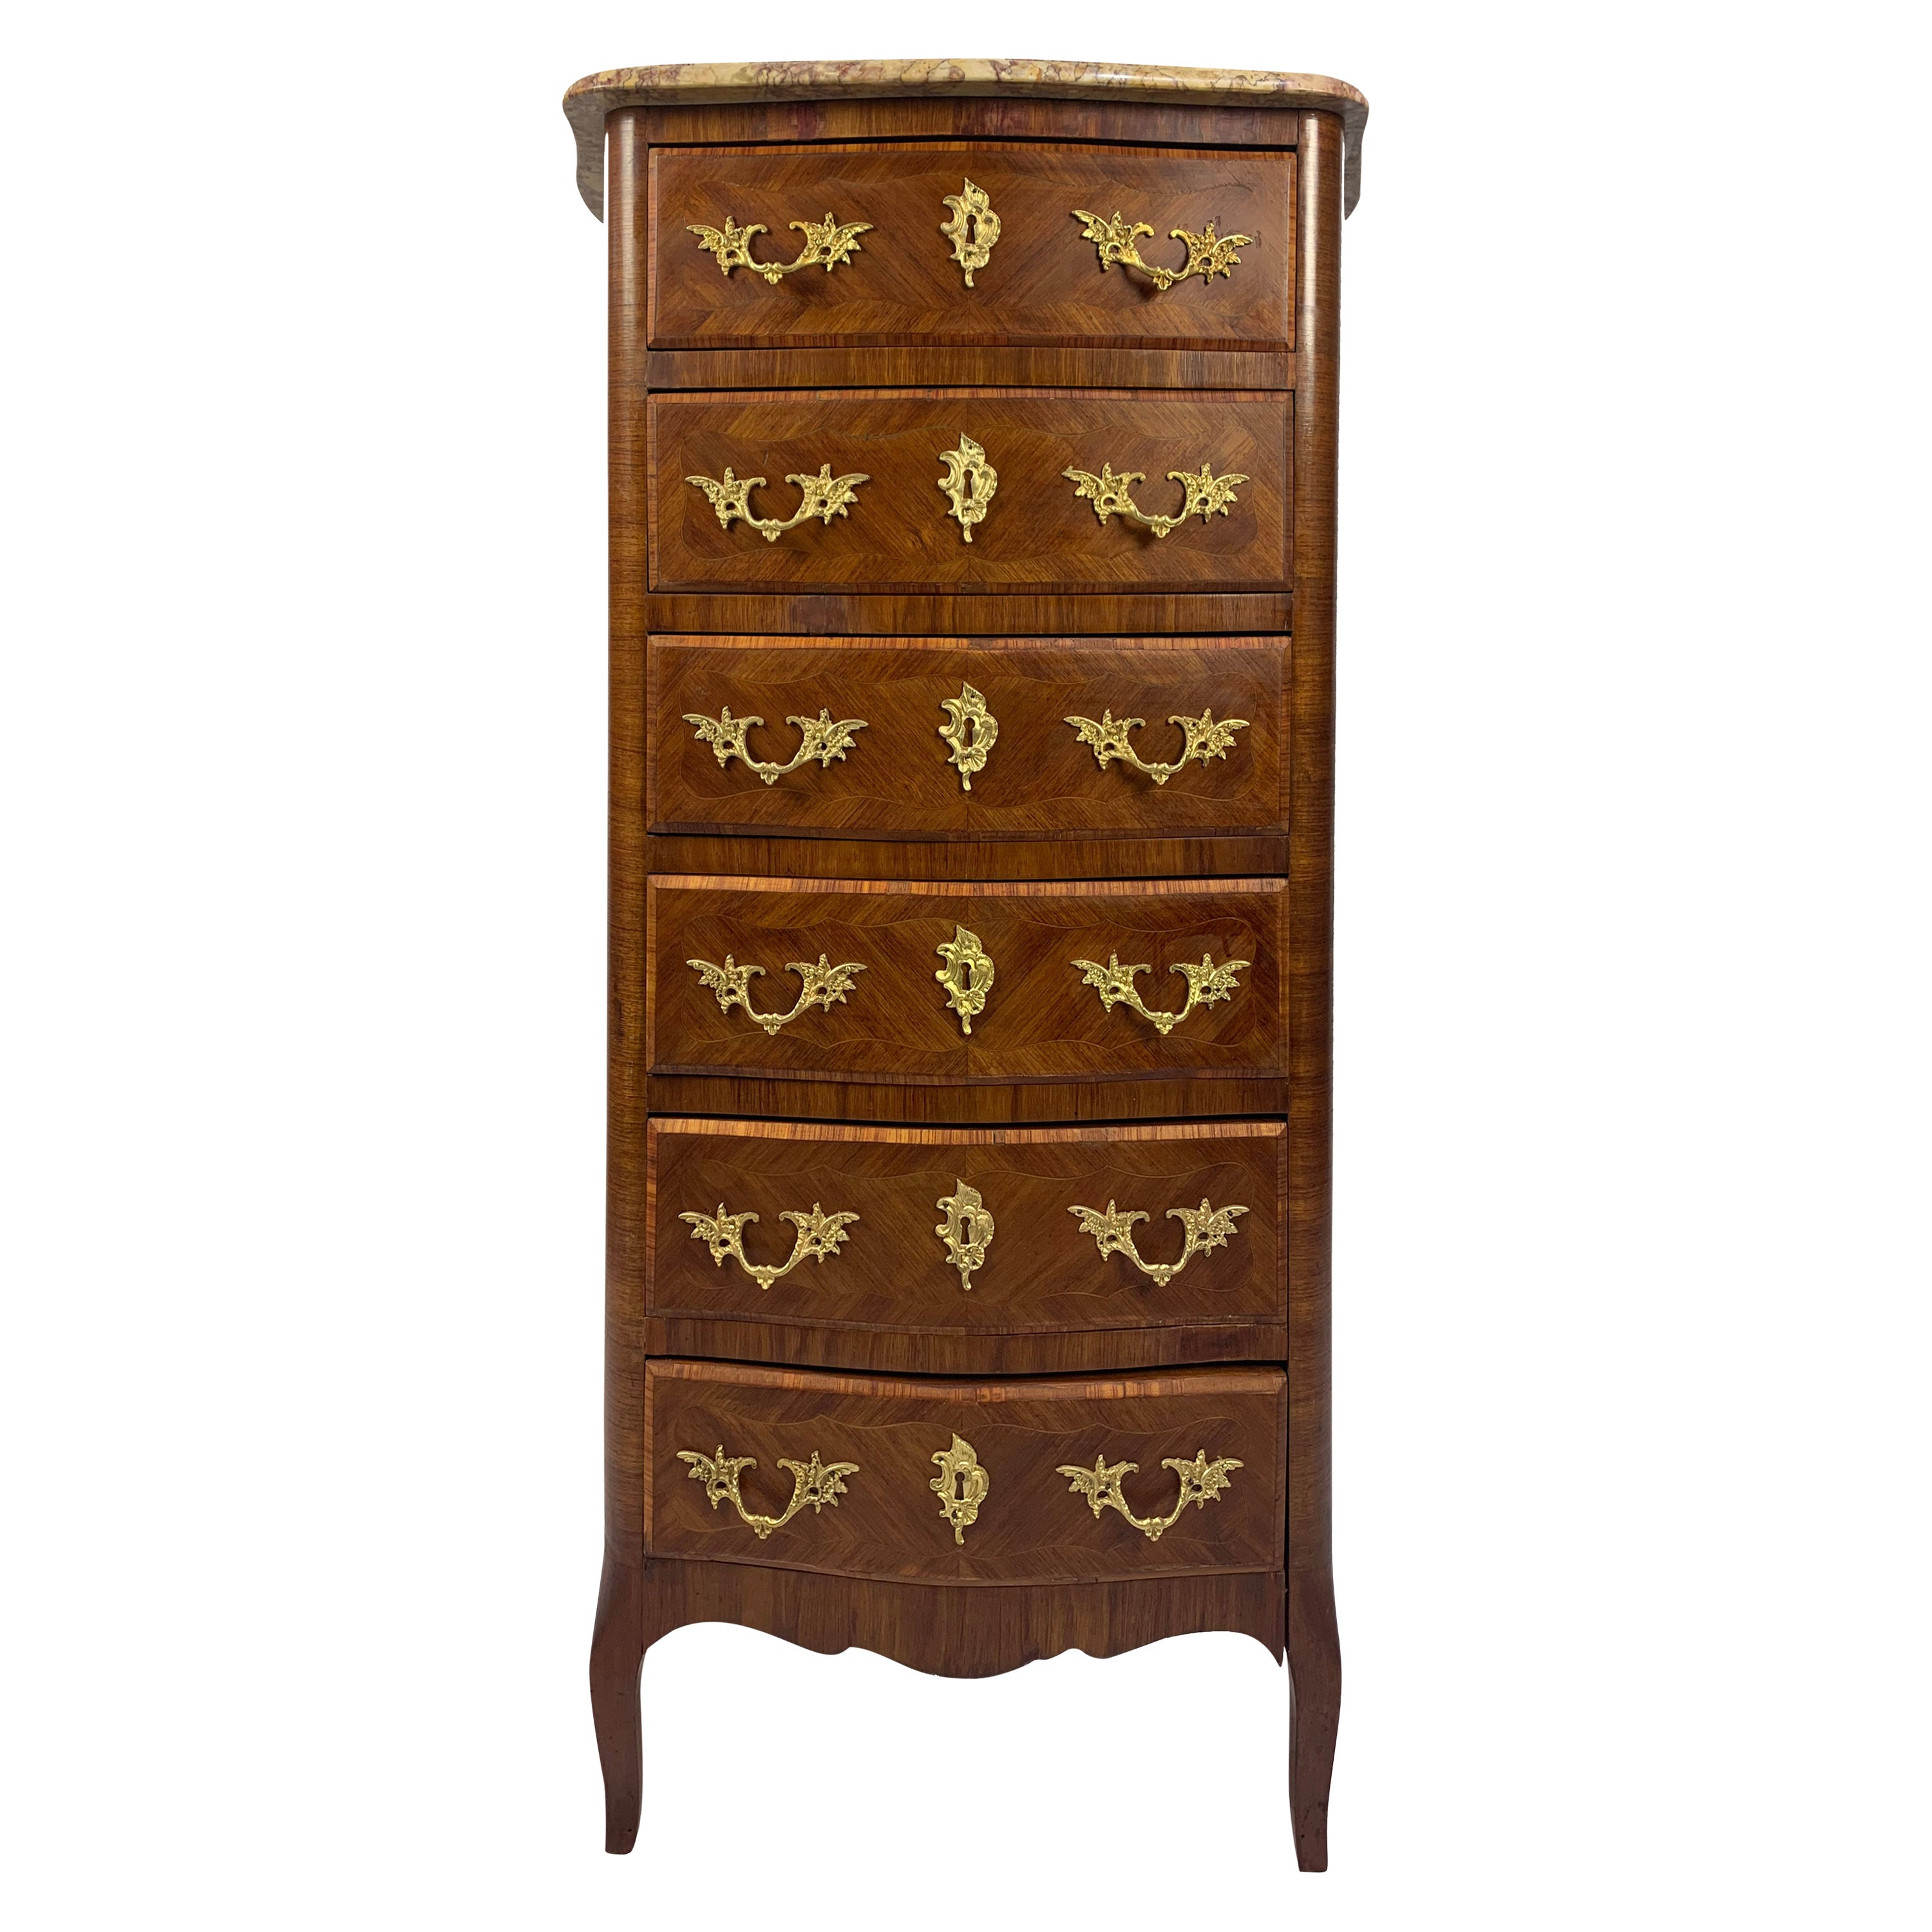 French Louis XVI Style Marble-Top and Bronze Chiffonier Lingerie Chest